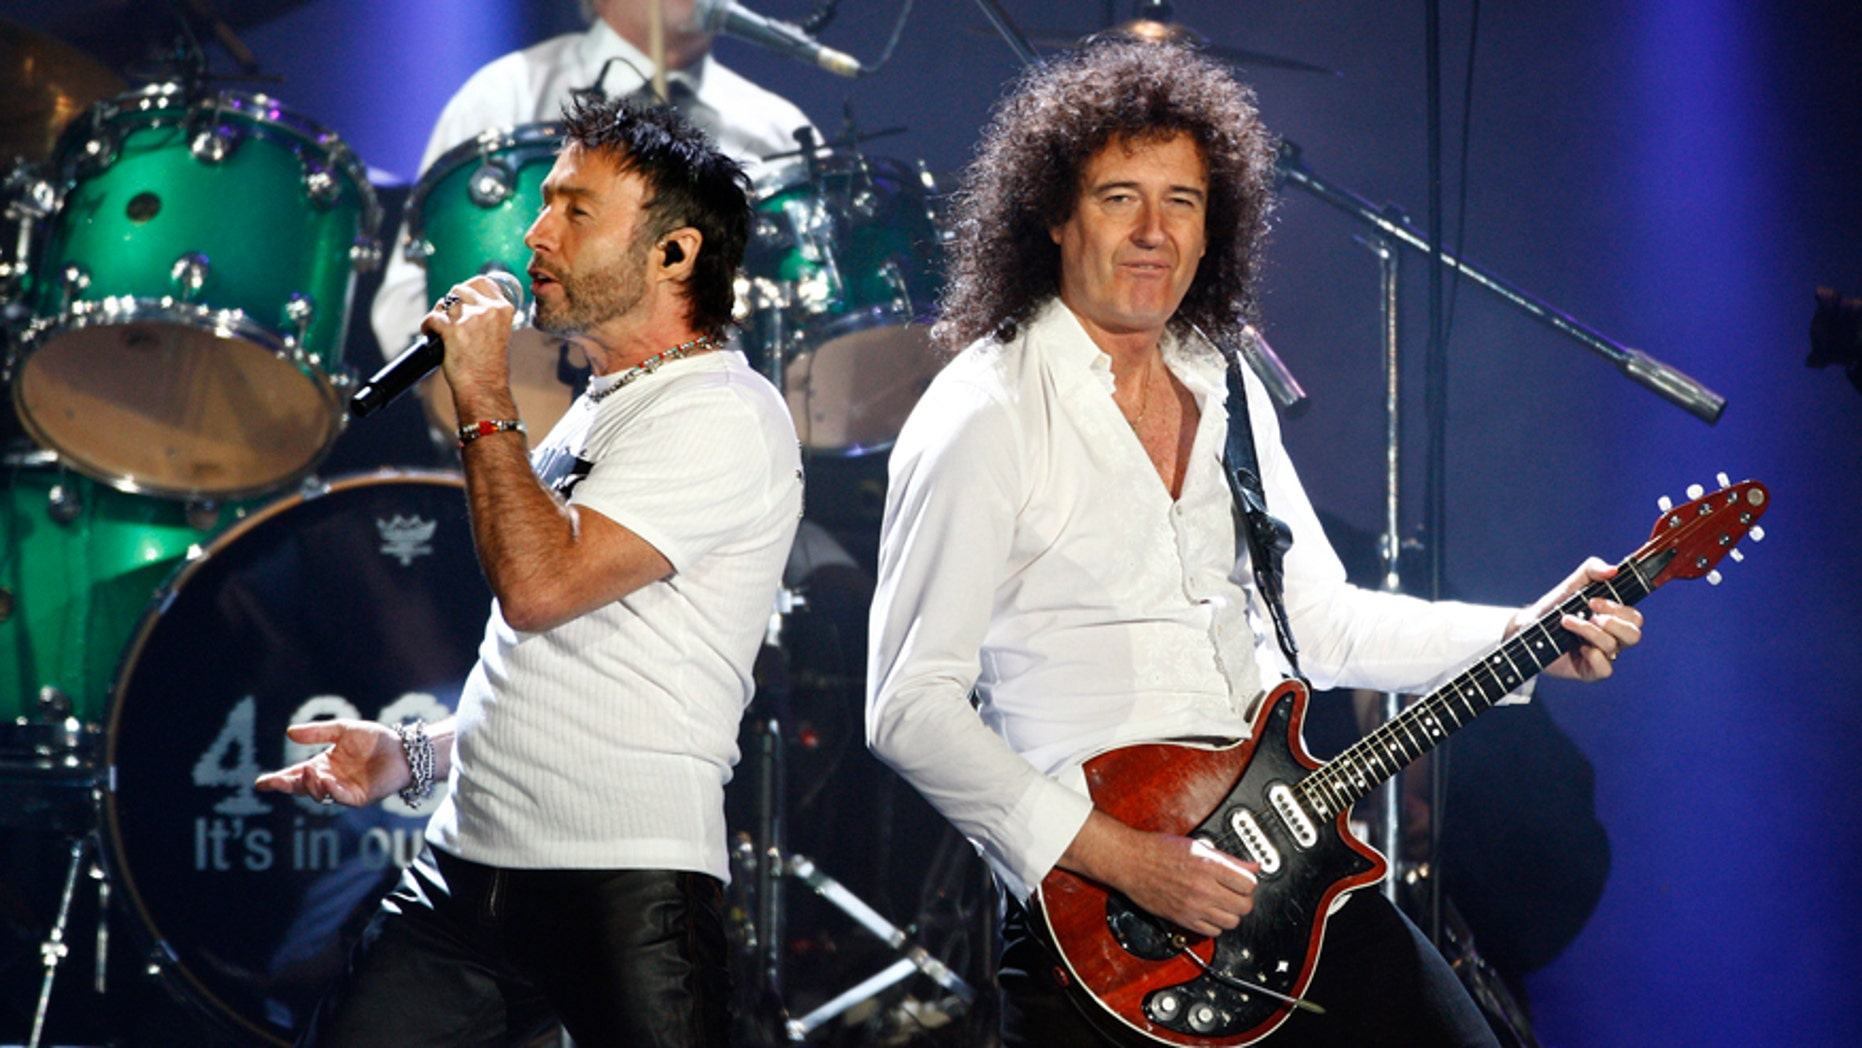 Queen's Brian May (R) and Paul Rodgers (L) perform in Hyde Park, London.